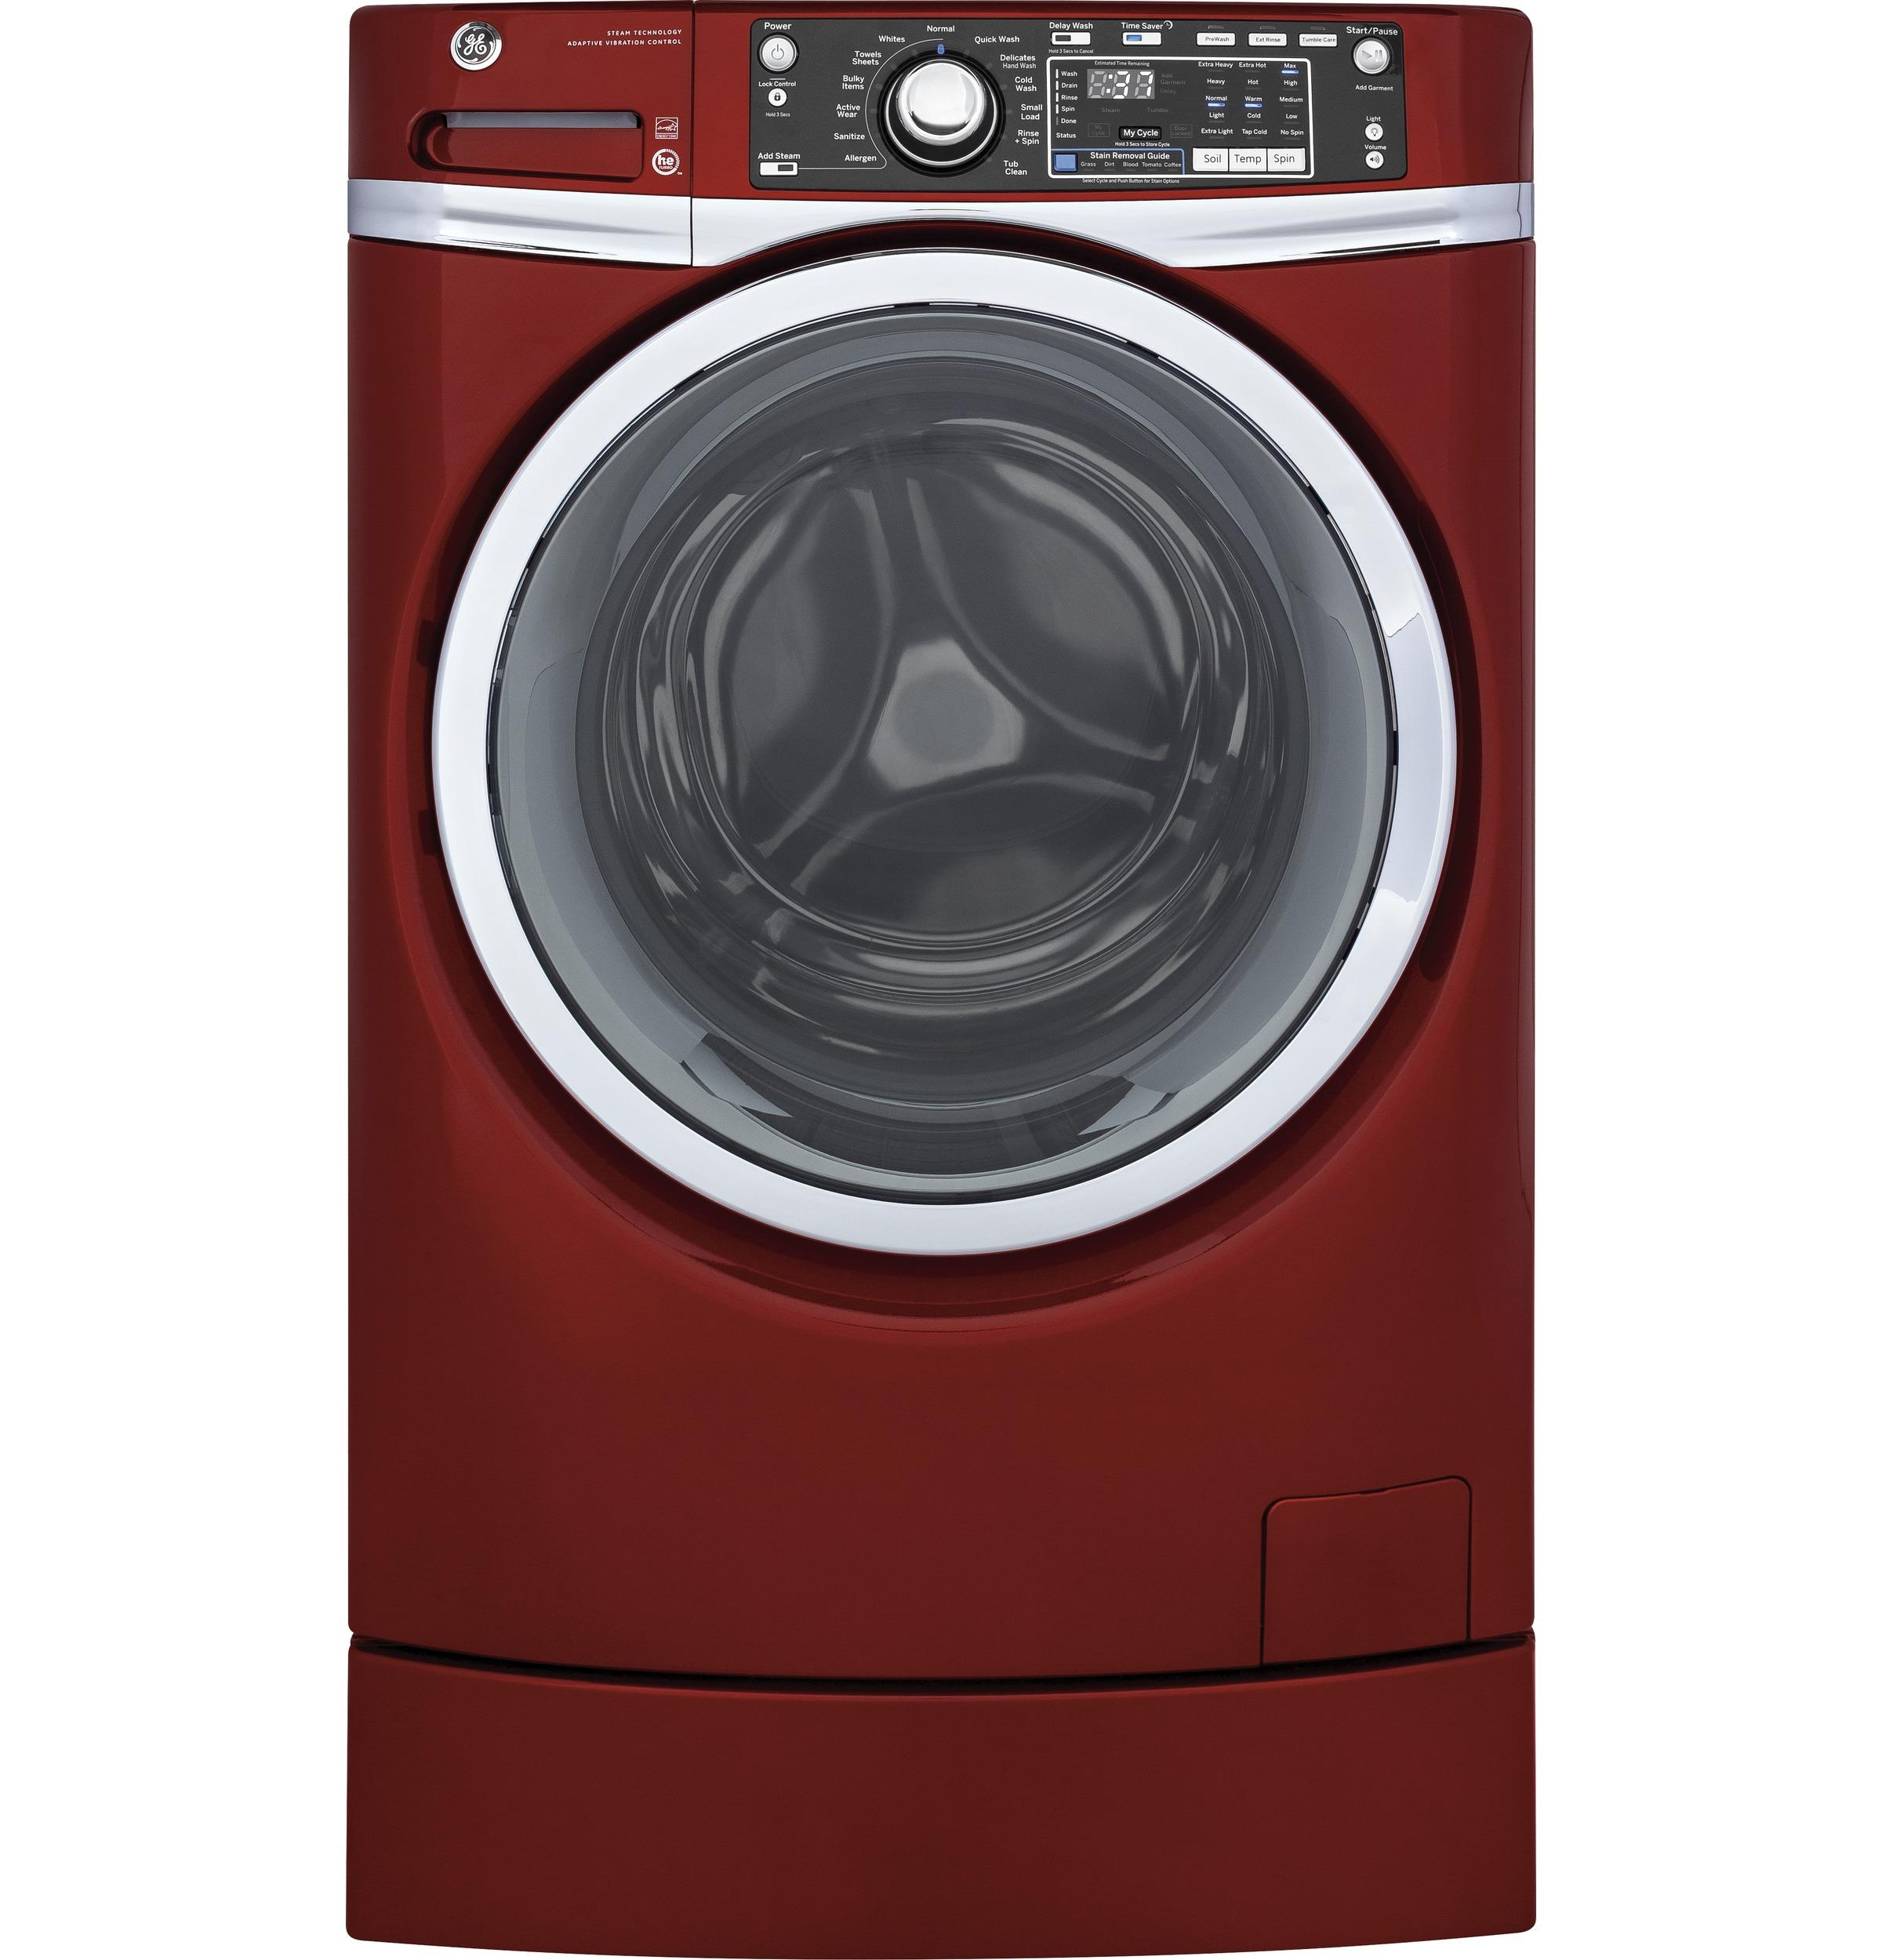 GE(R) ENERGY STAR(R) 4.9 DOE cu. ft. capacity RightHeight(TM) Design Front Load washer with steam